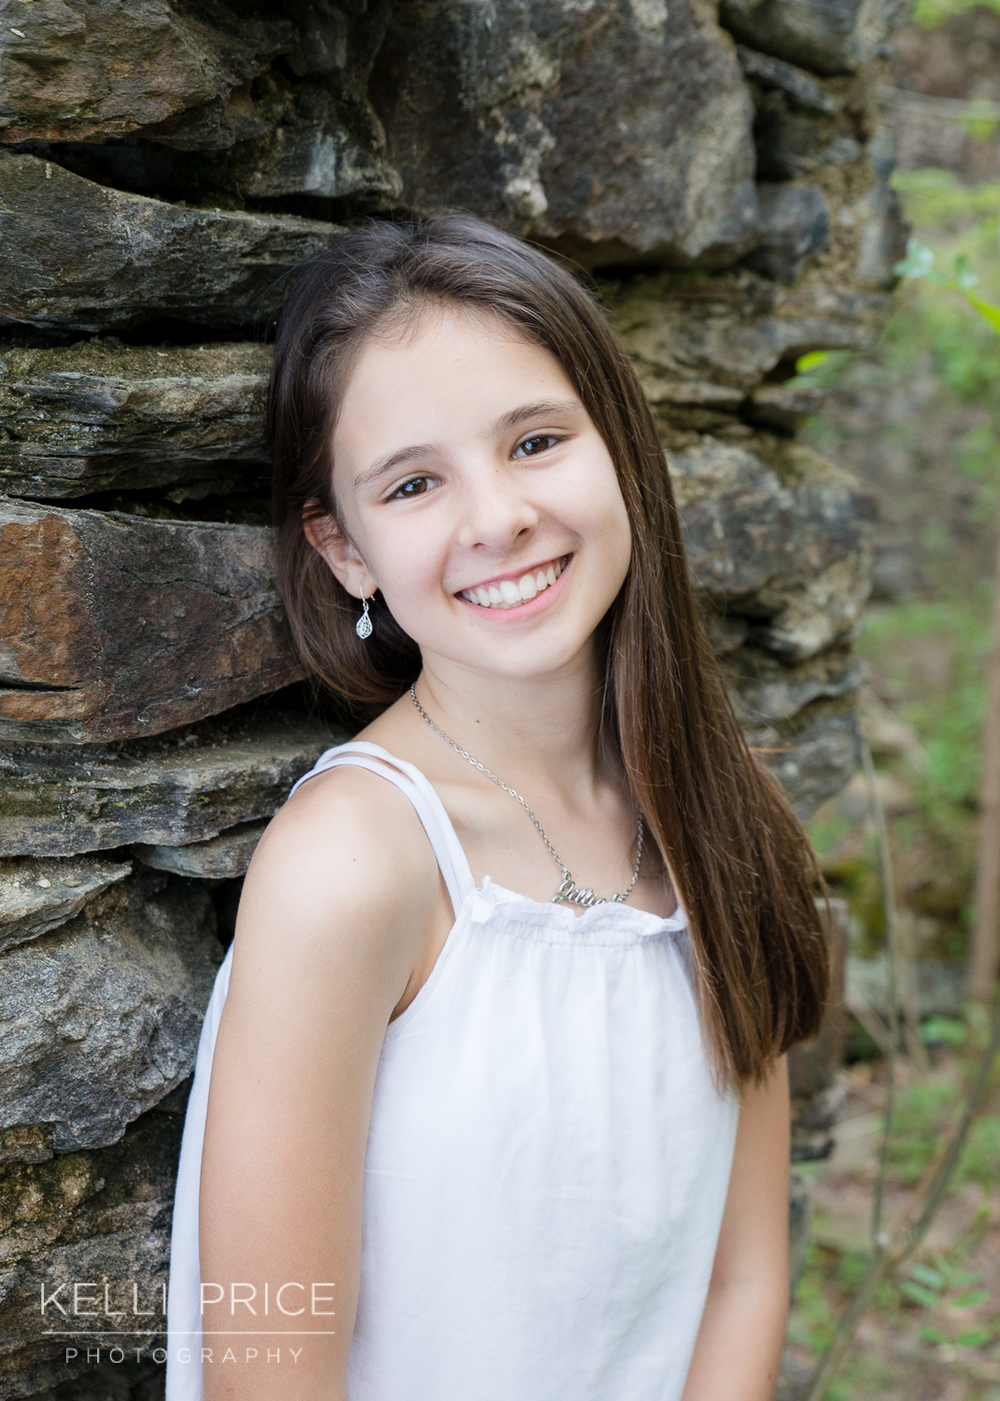 Daughter Portrait at Sope Creek, Marietta, Georgia